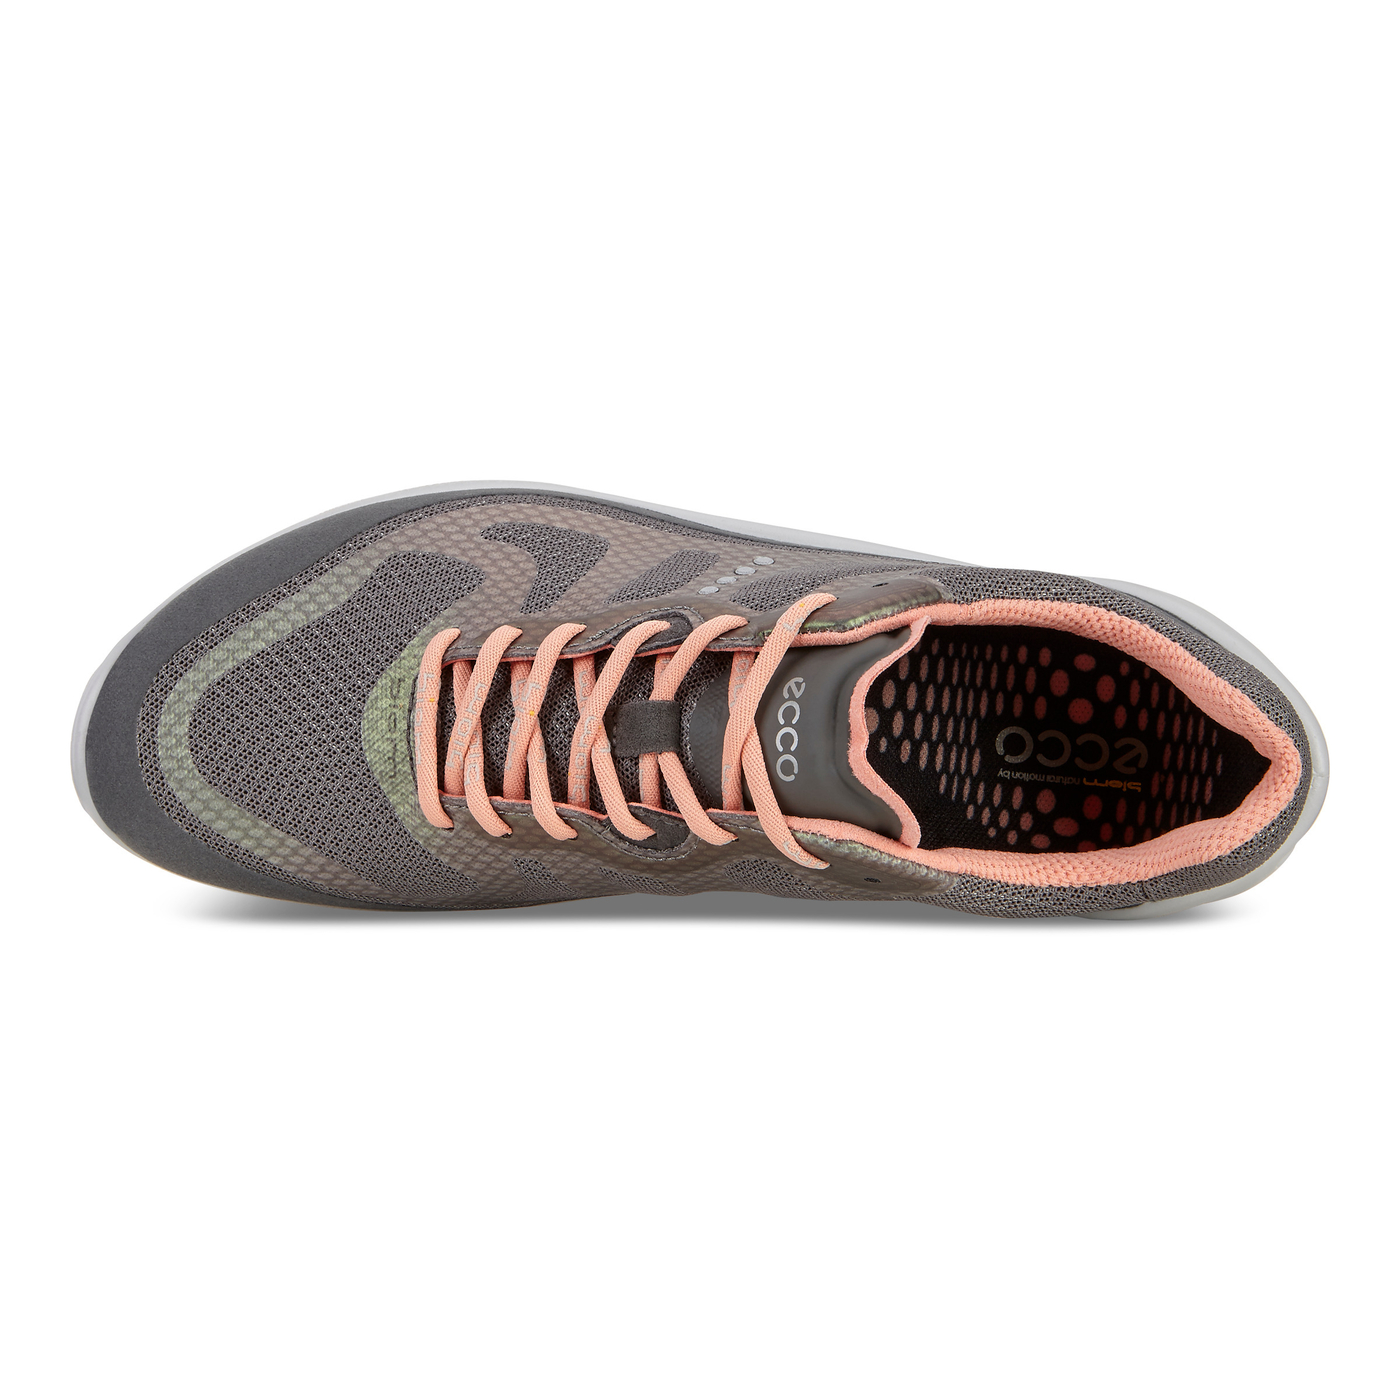 a9b7bc90 ECCO Womens BIOM Fjuel Tie | Women's Shoes | ECCO® Shoes